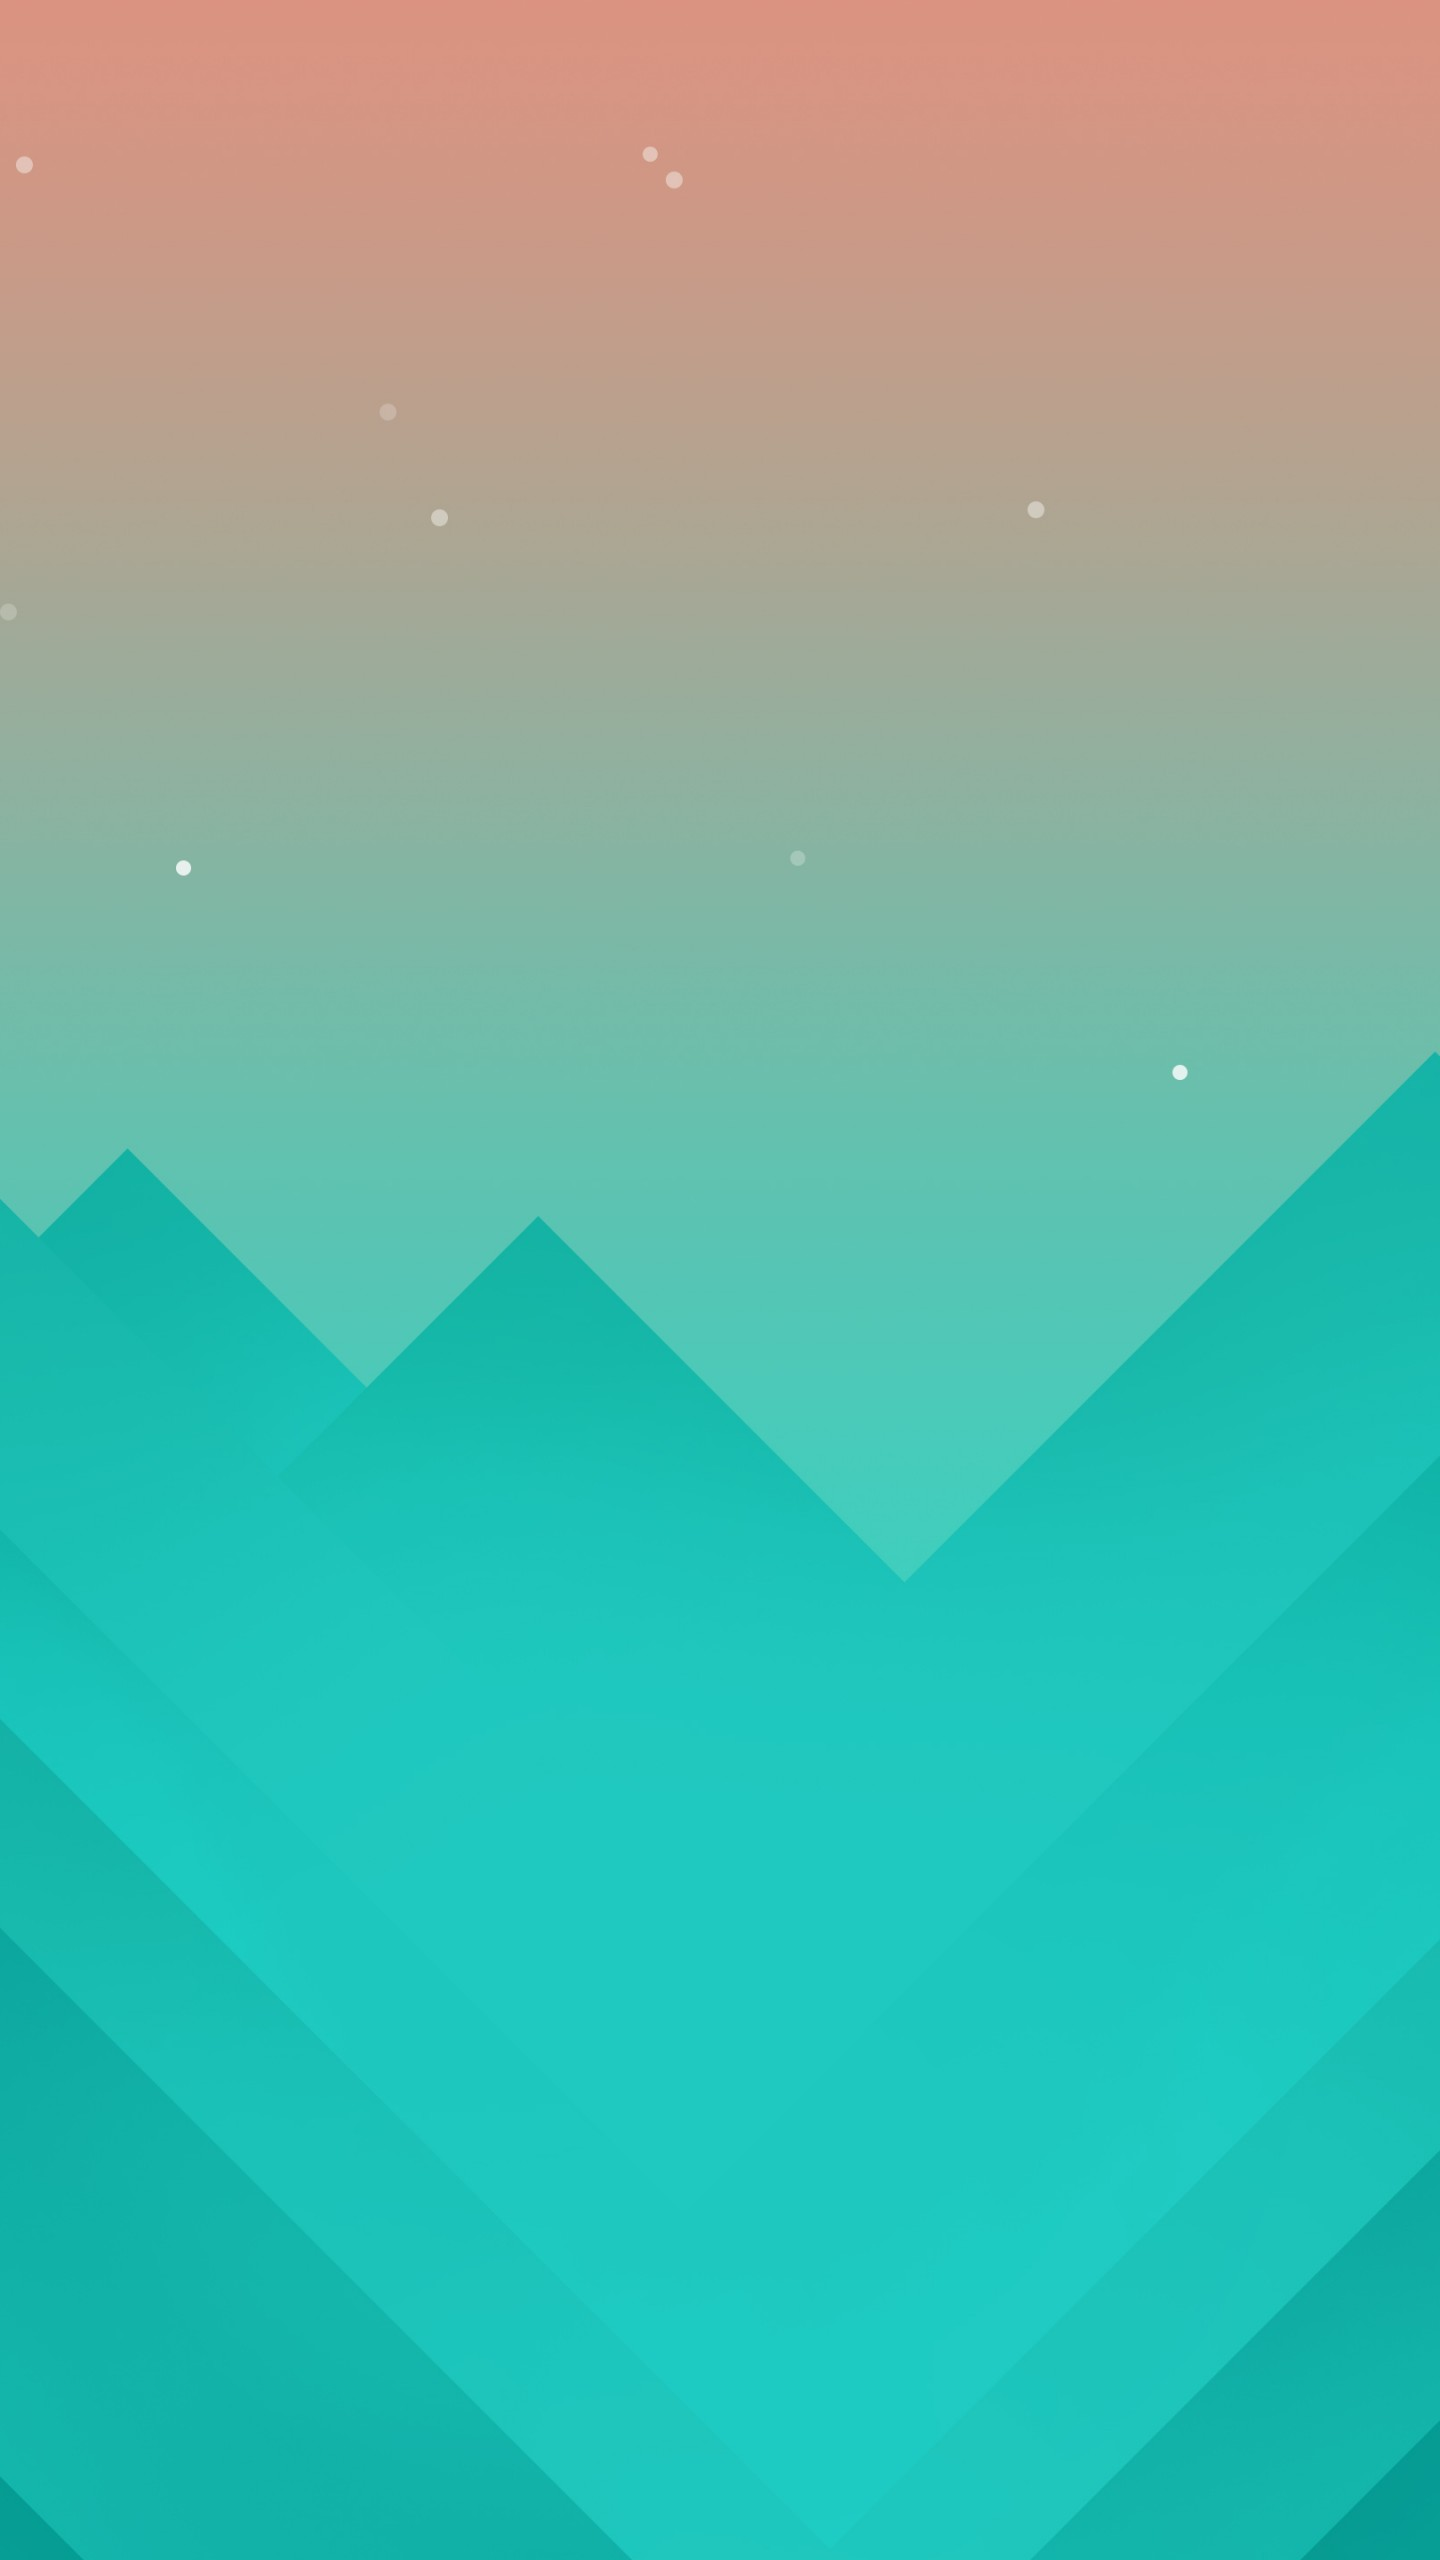 Wallpaper Flat Polygons 4k 5k Mountains Iphone Wallpaper Android Wallpaper Abstract